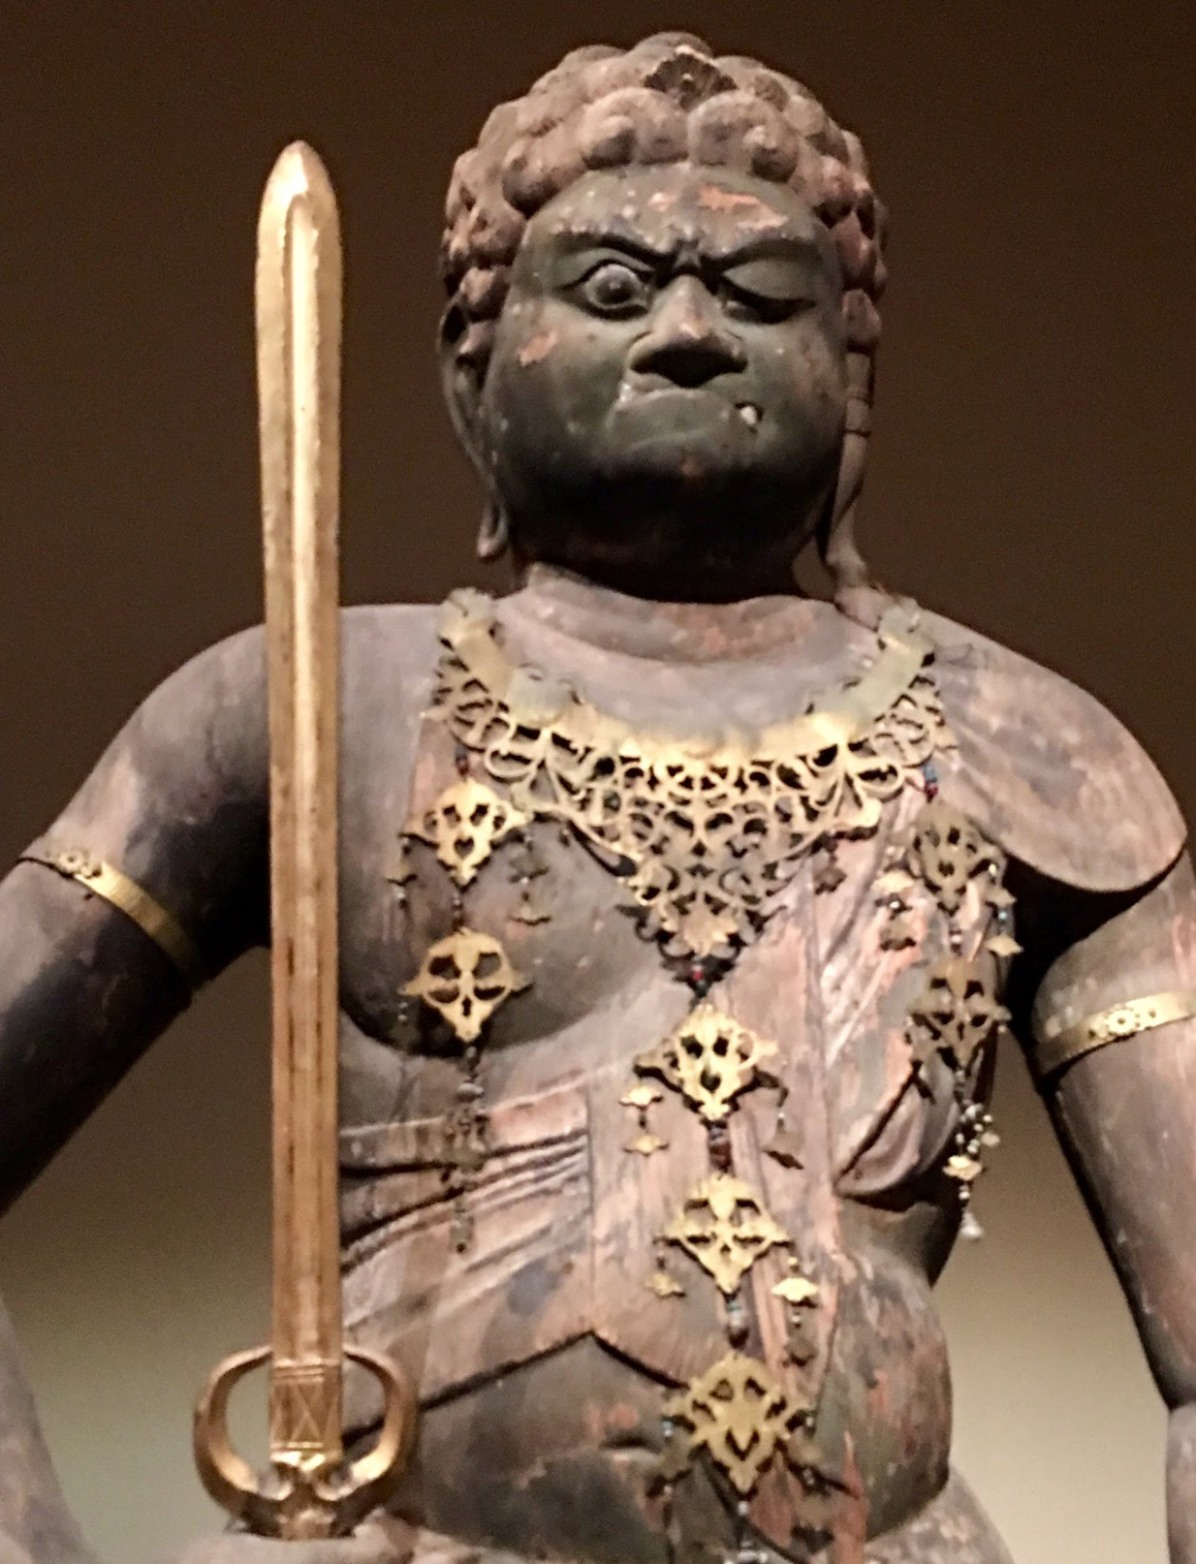 Not a good day for this guy...The Met Japenese Exhibit